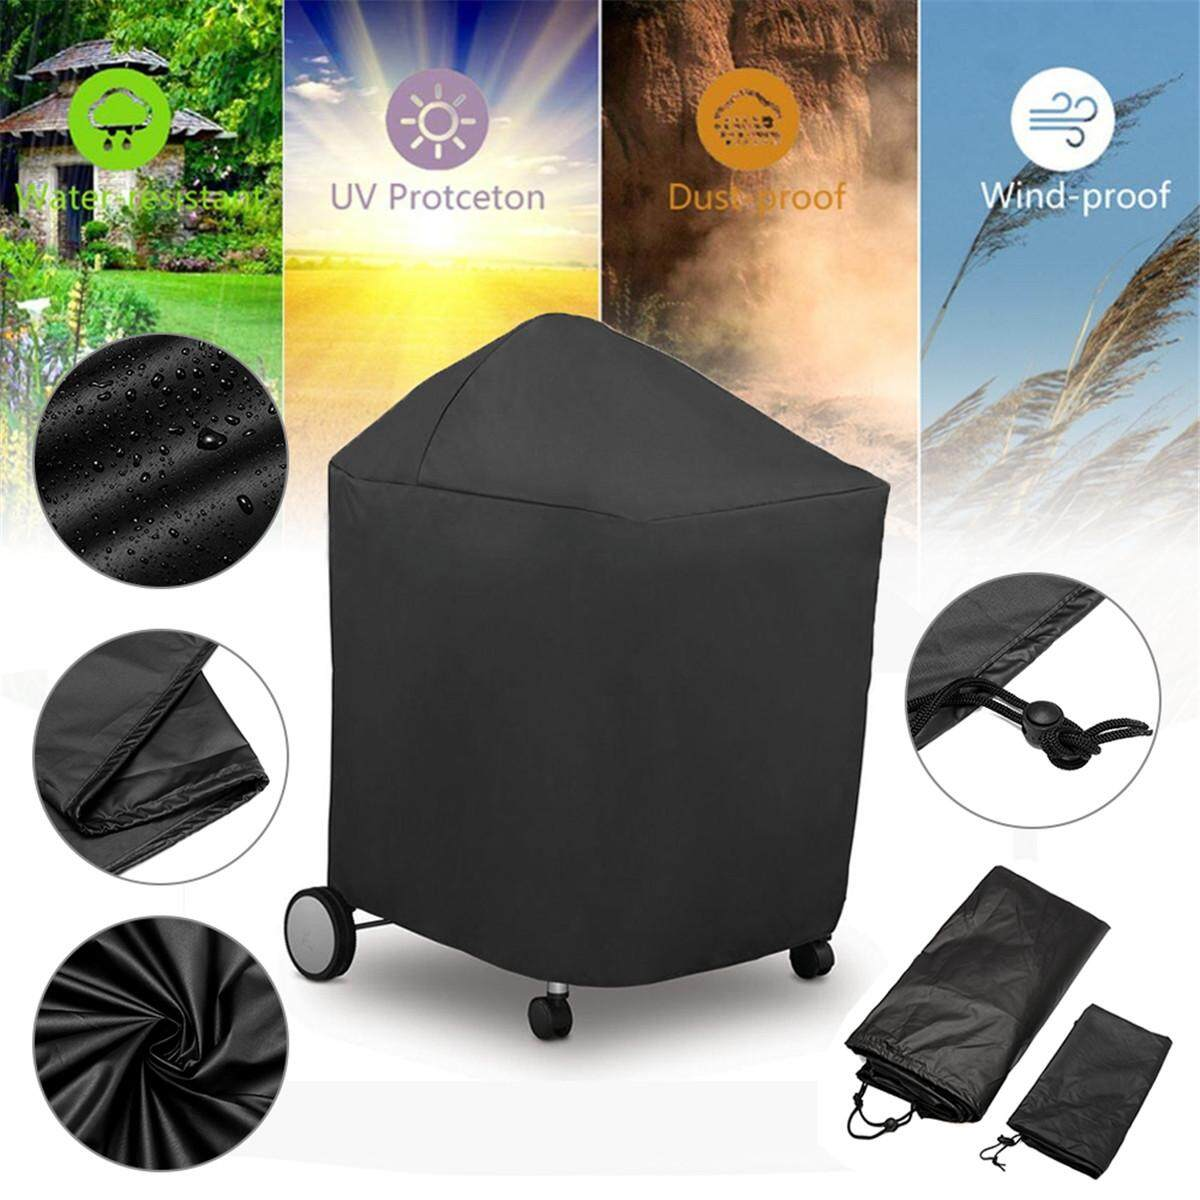 107*84*102cm Barbeque BBQ Grill Cover with Storage Bag for Weber 7151 Grill Performers Folding Table